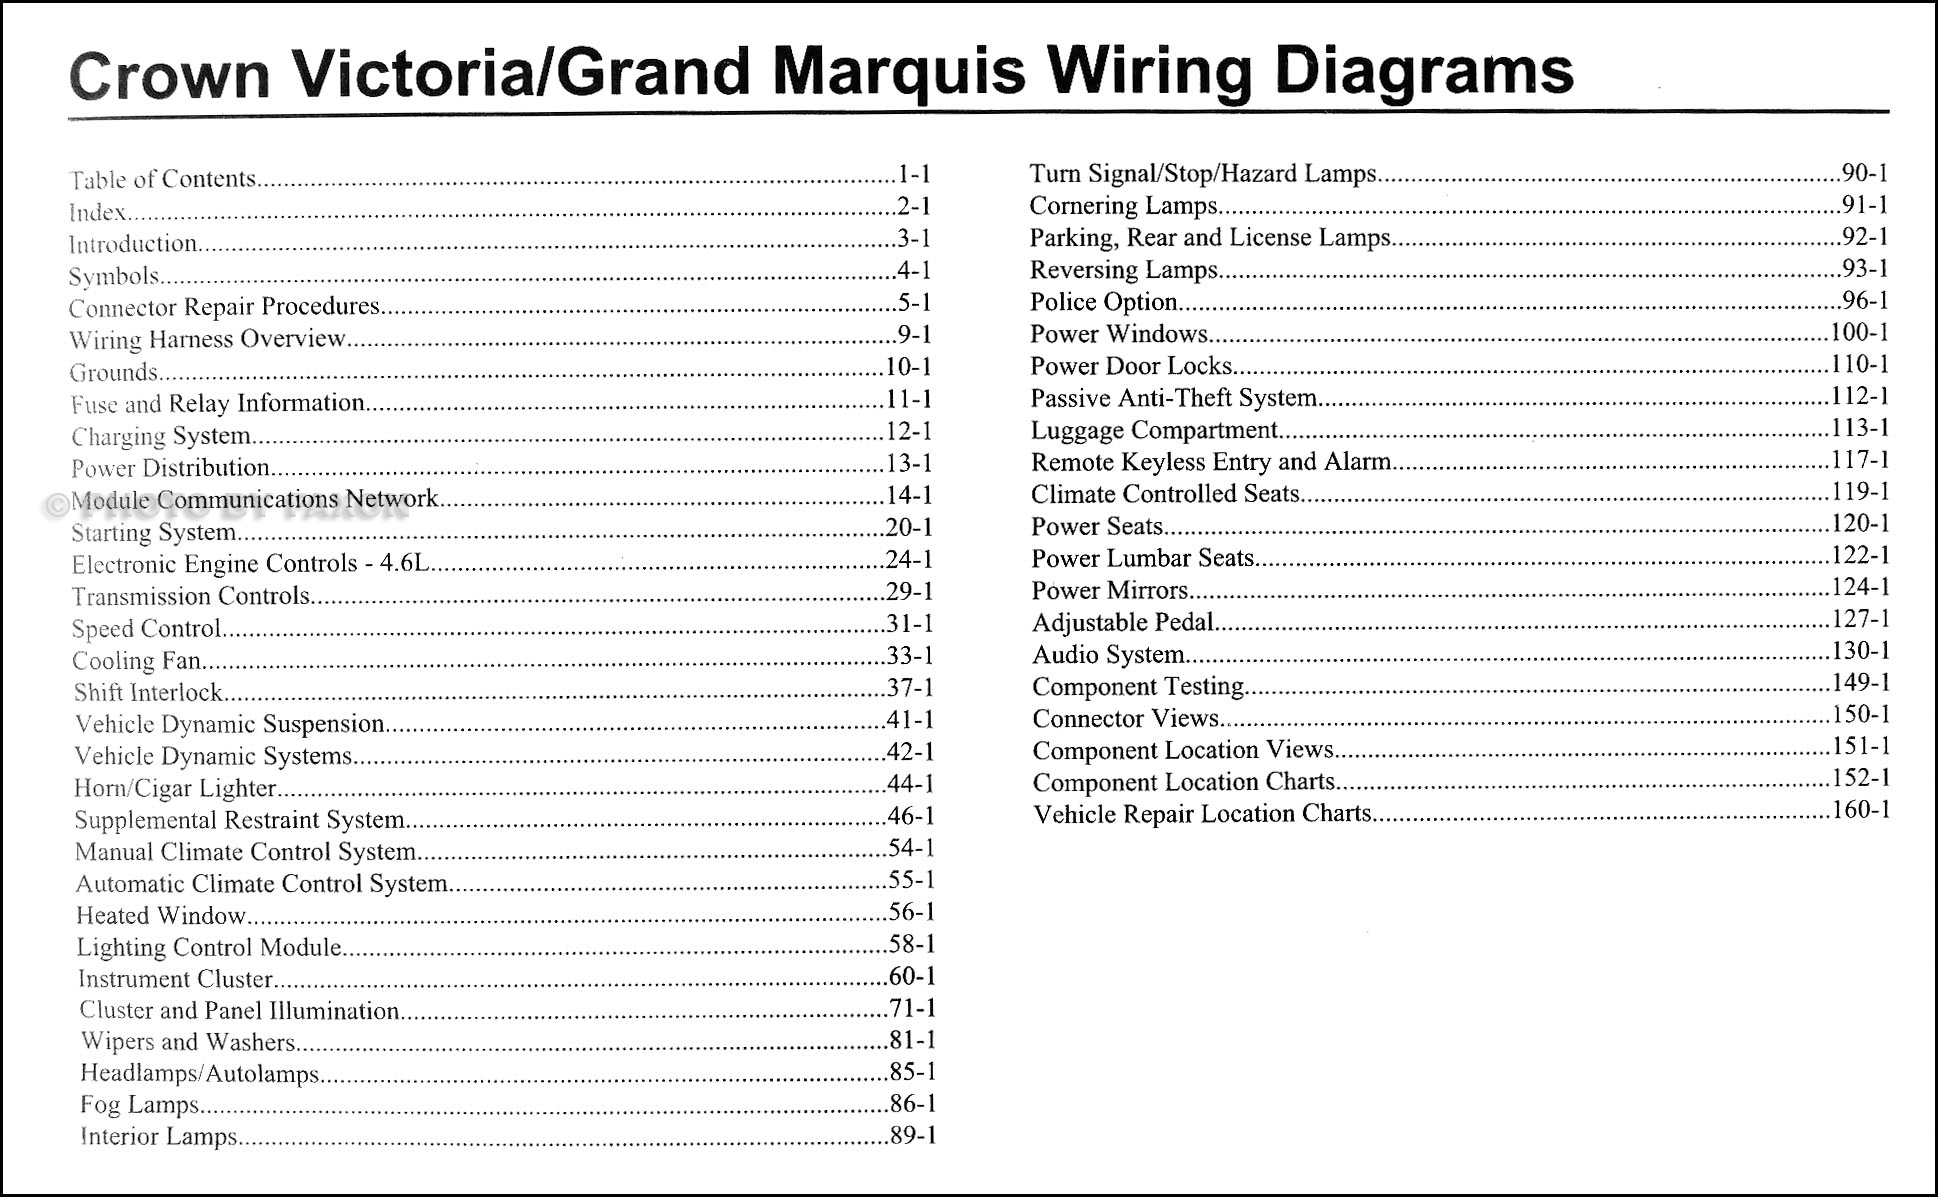 2009FordCrownVictoriaOWD TOC 2009 crown victoria & grand marquis original wiring diagram manual